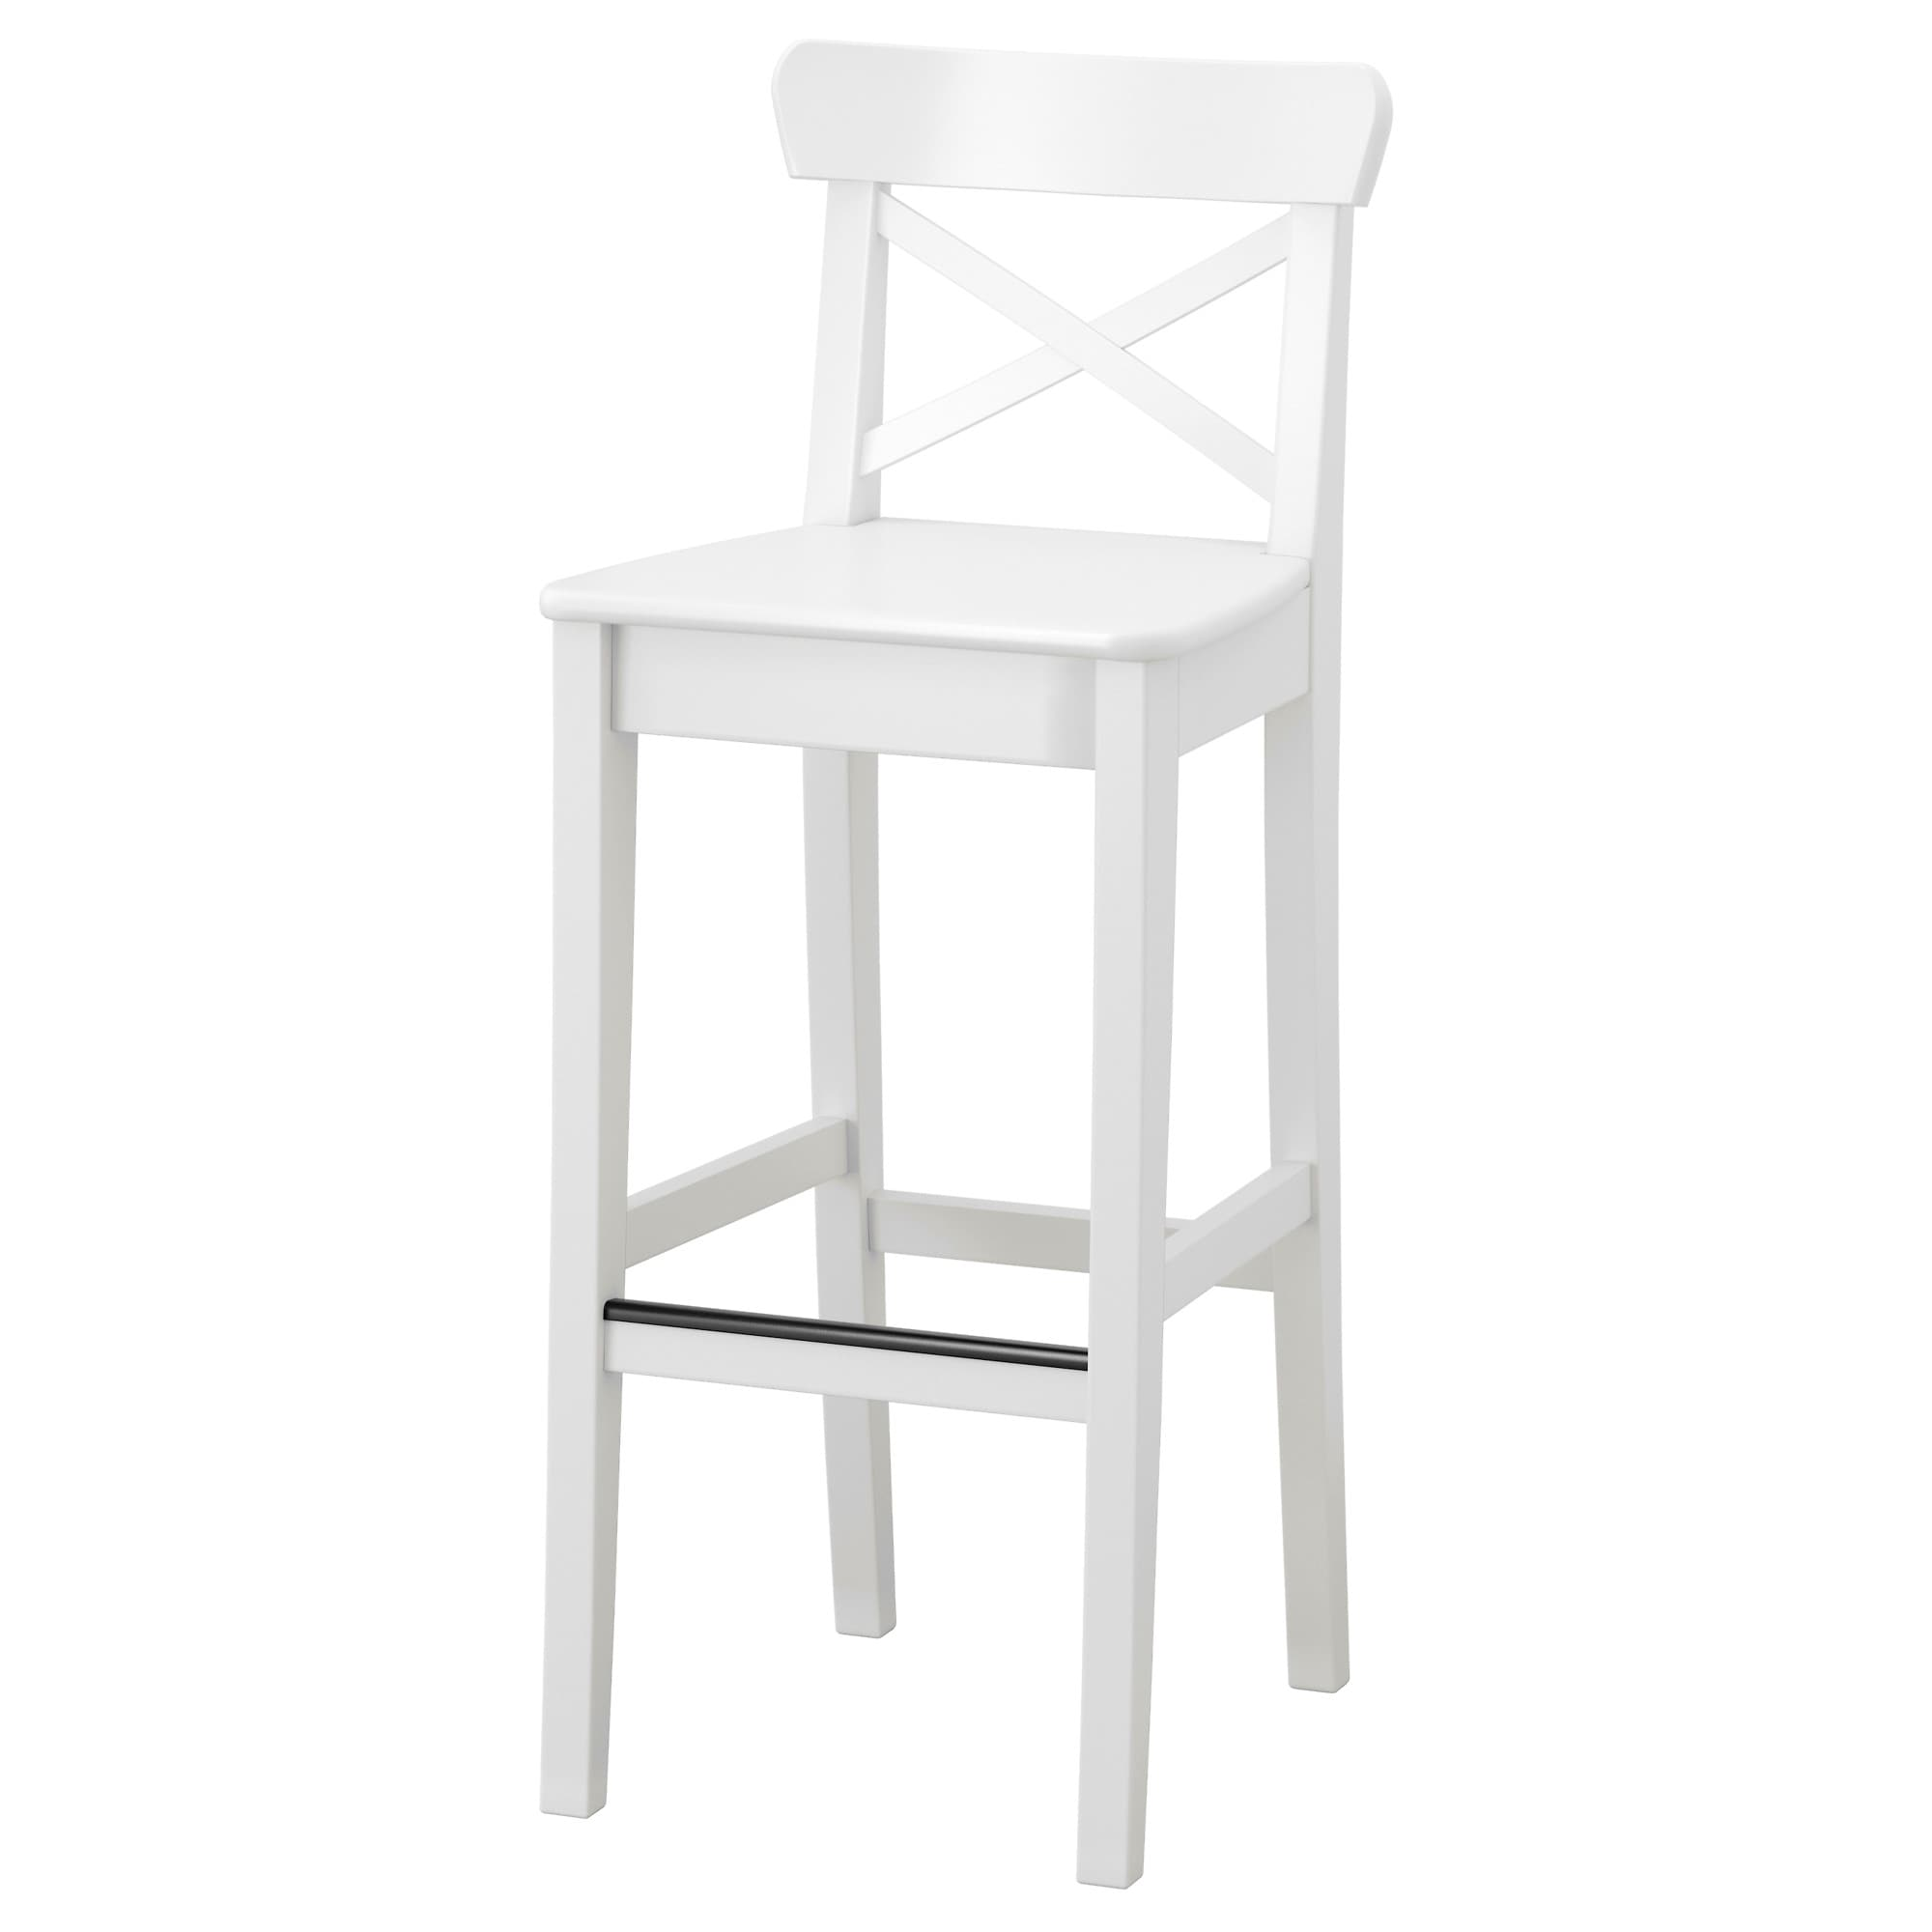 Ingolf Bar Stool With Backrest 29 1 8 Ikea White Bar